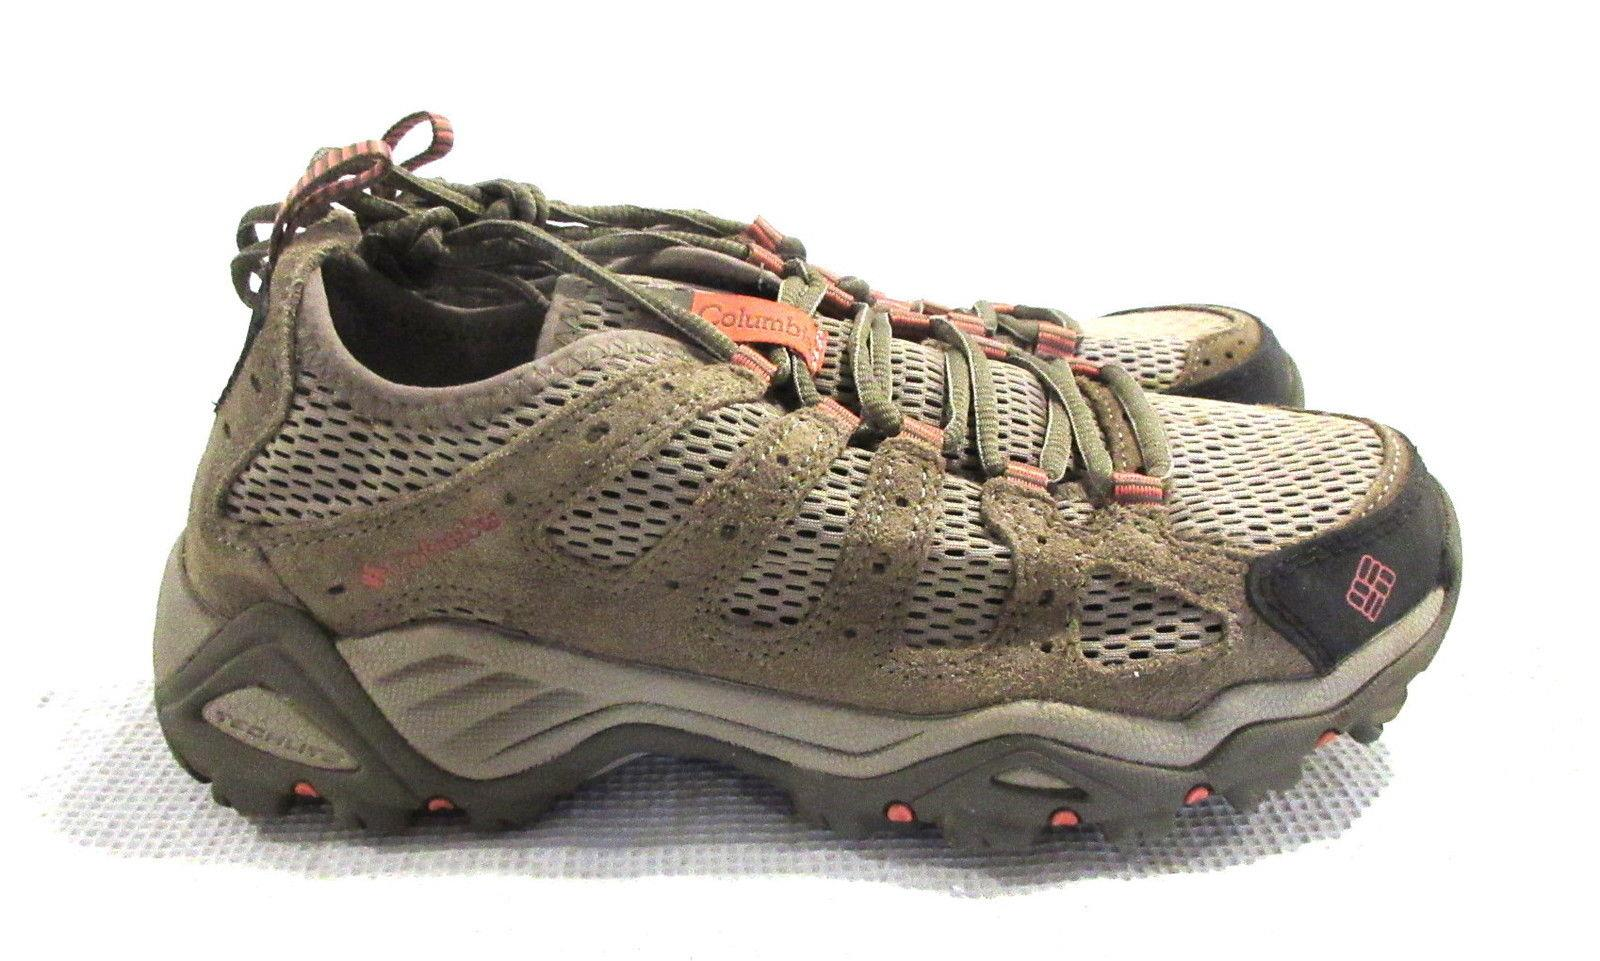 helvetia women The columbia women's helvatia is a strong, lightweight trail shoe built for multiple outdoor activities, with a techlite midsole for ultralight cushioning free shipping for our rewards program members.